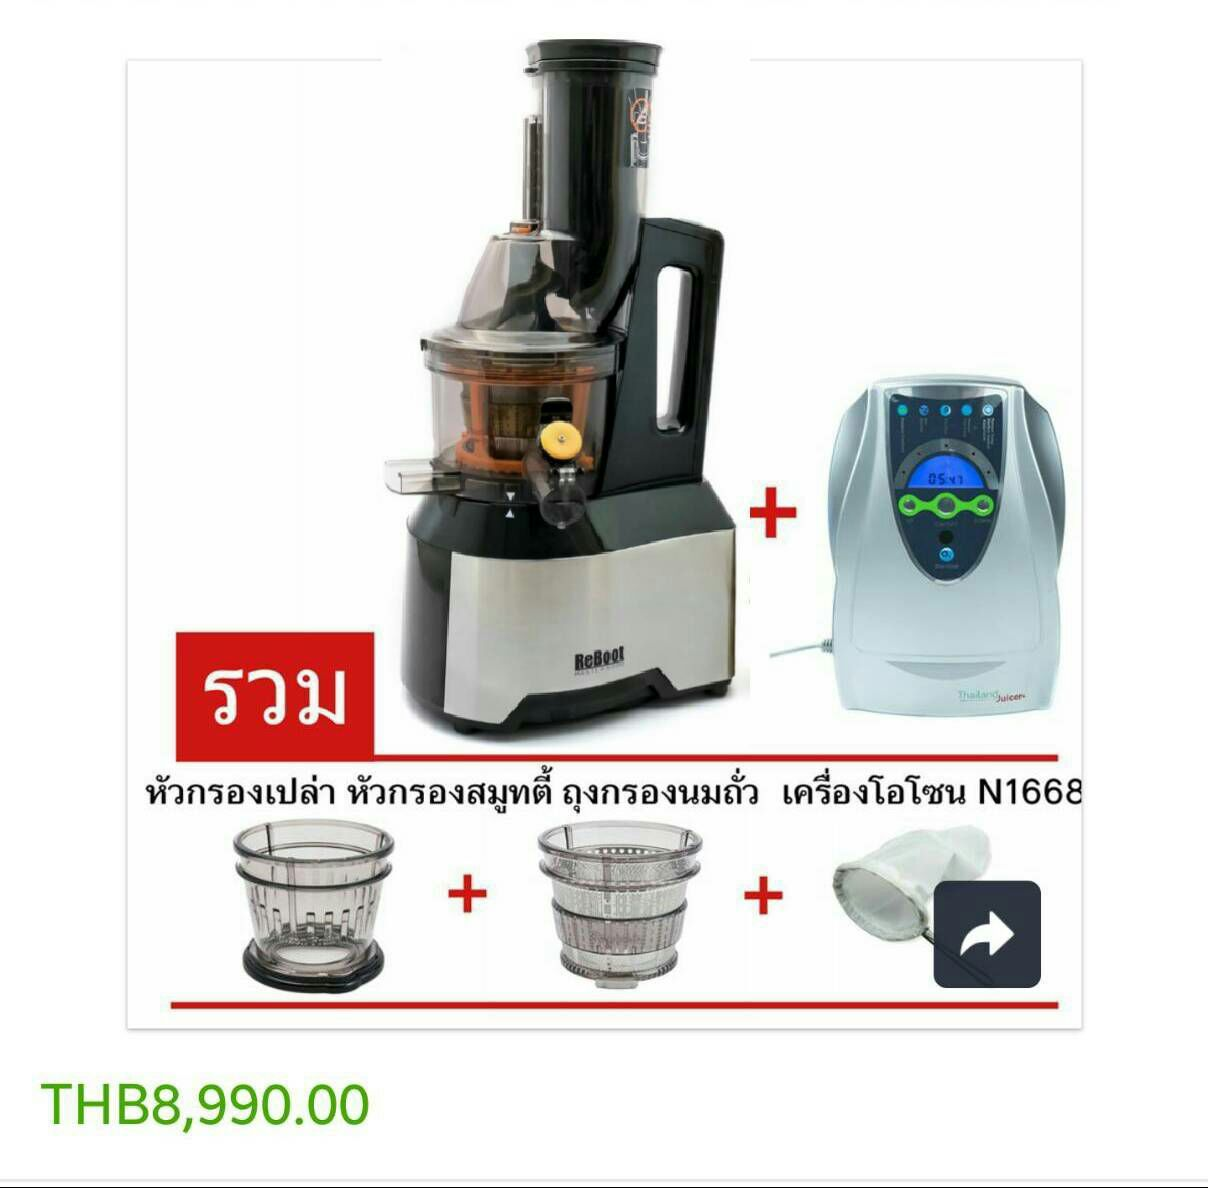 Slow Juicer For Juice Bar : Special discount package 2 Thailand juicerSlow juicers & ozone cleaners for home and juice bars